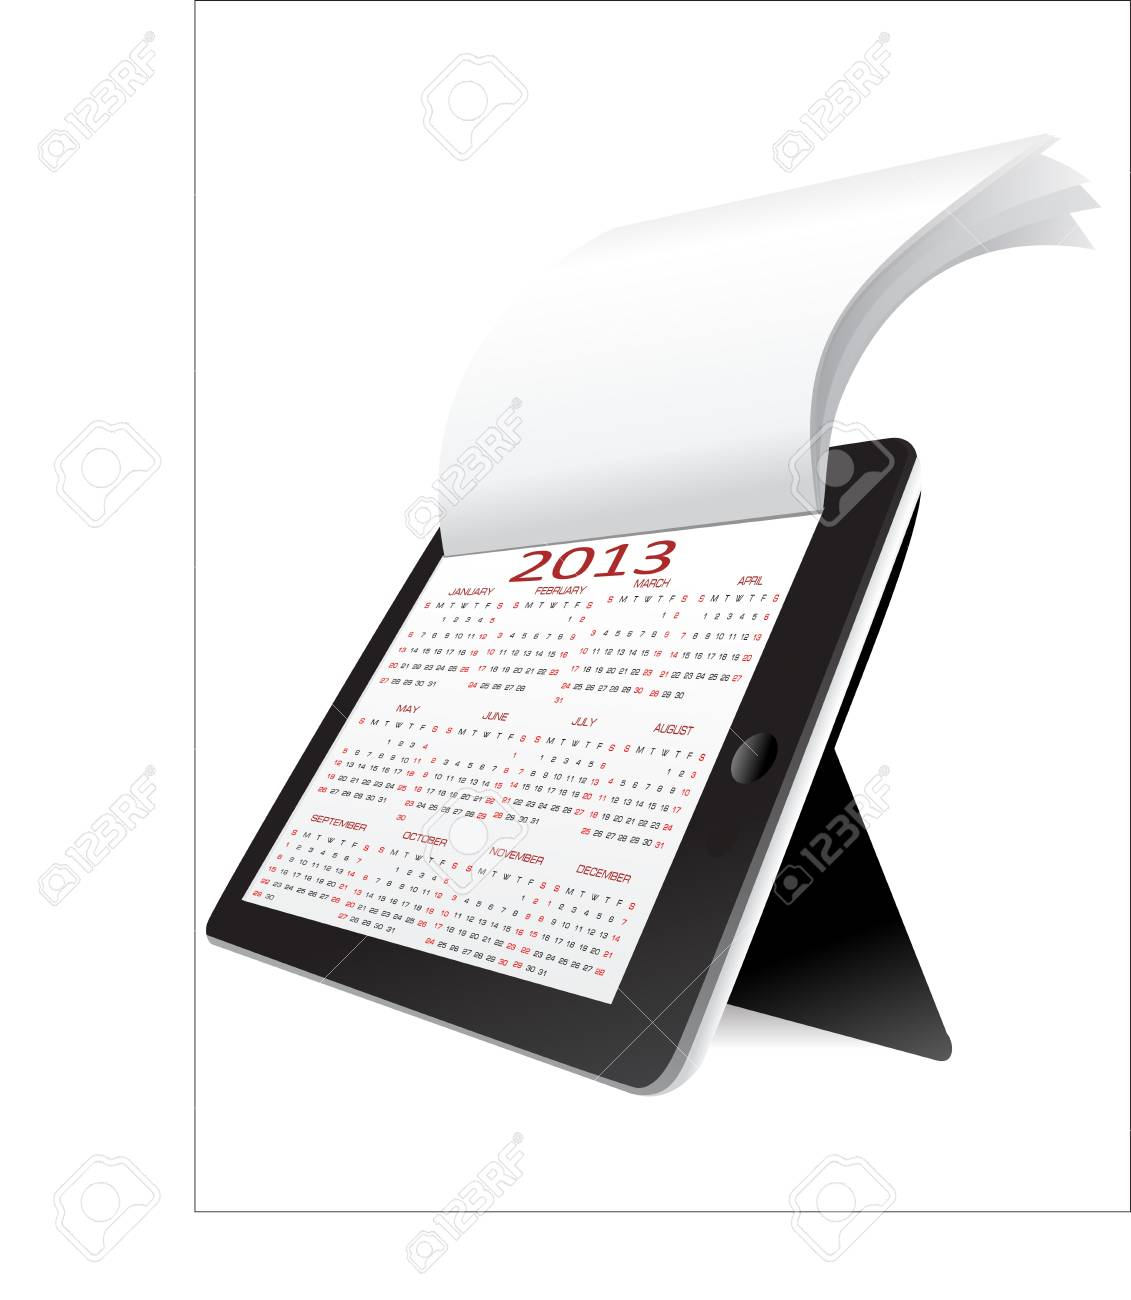 Black tablet pc on white background WIth calendar 2013 Stock Vector - 17483896